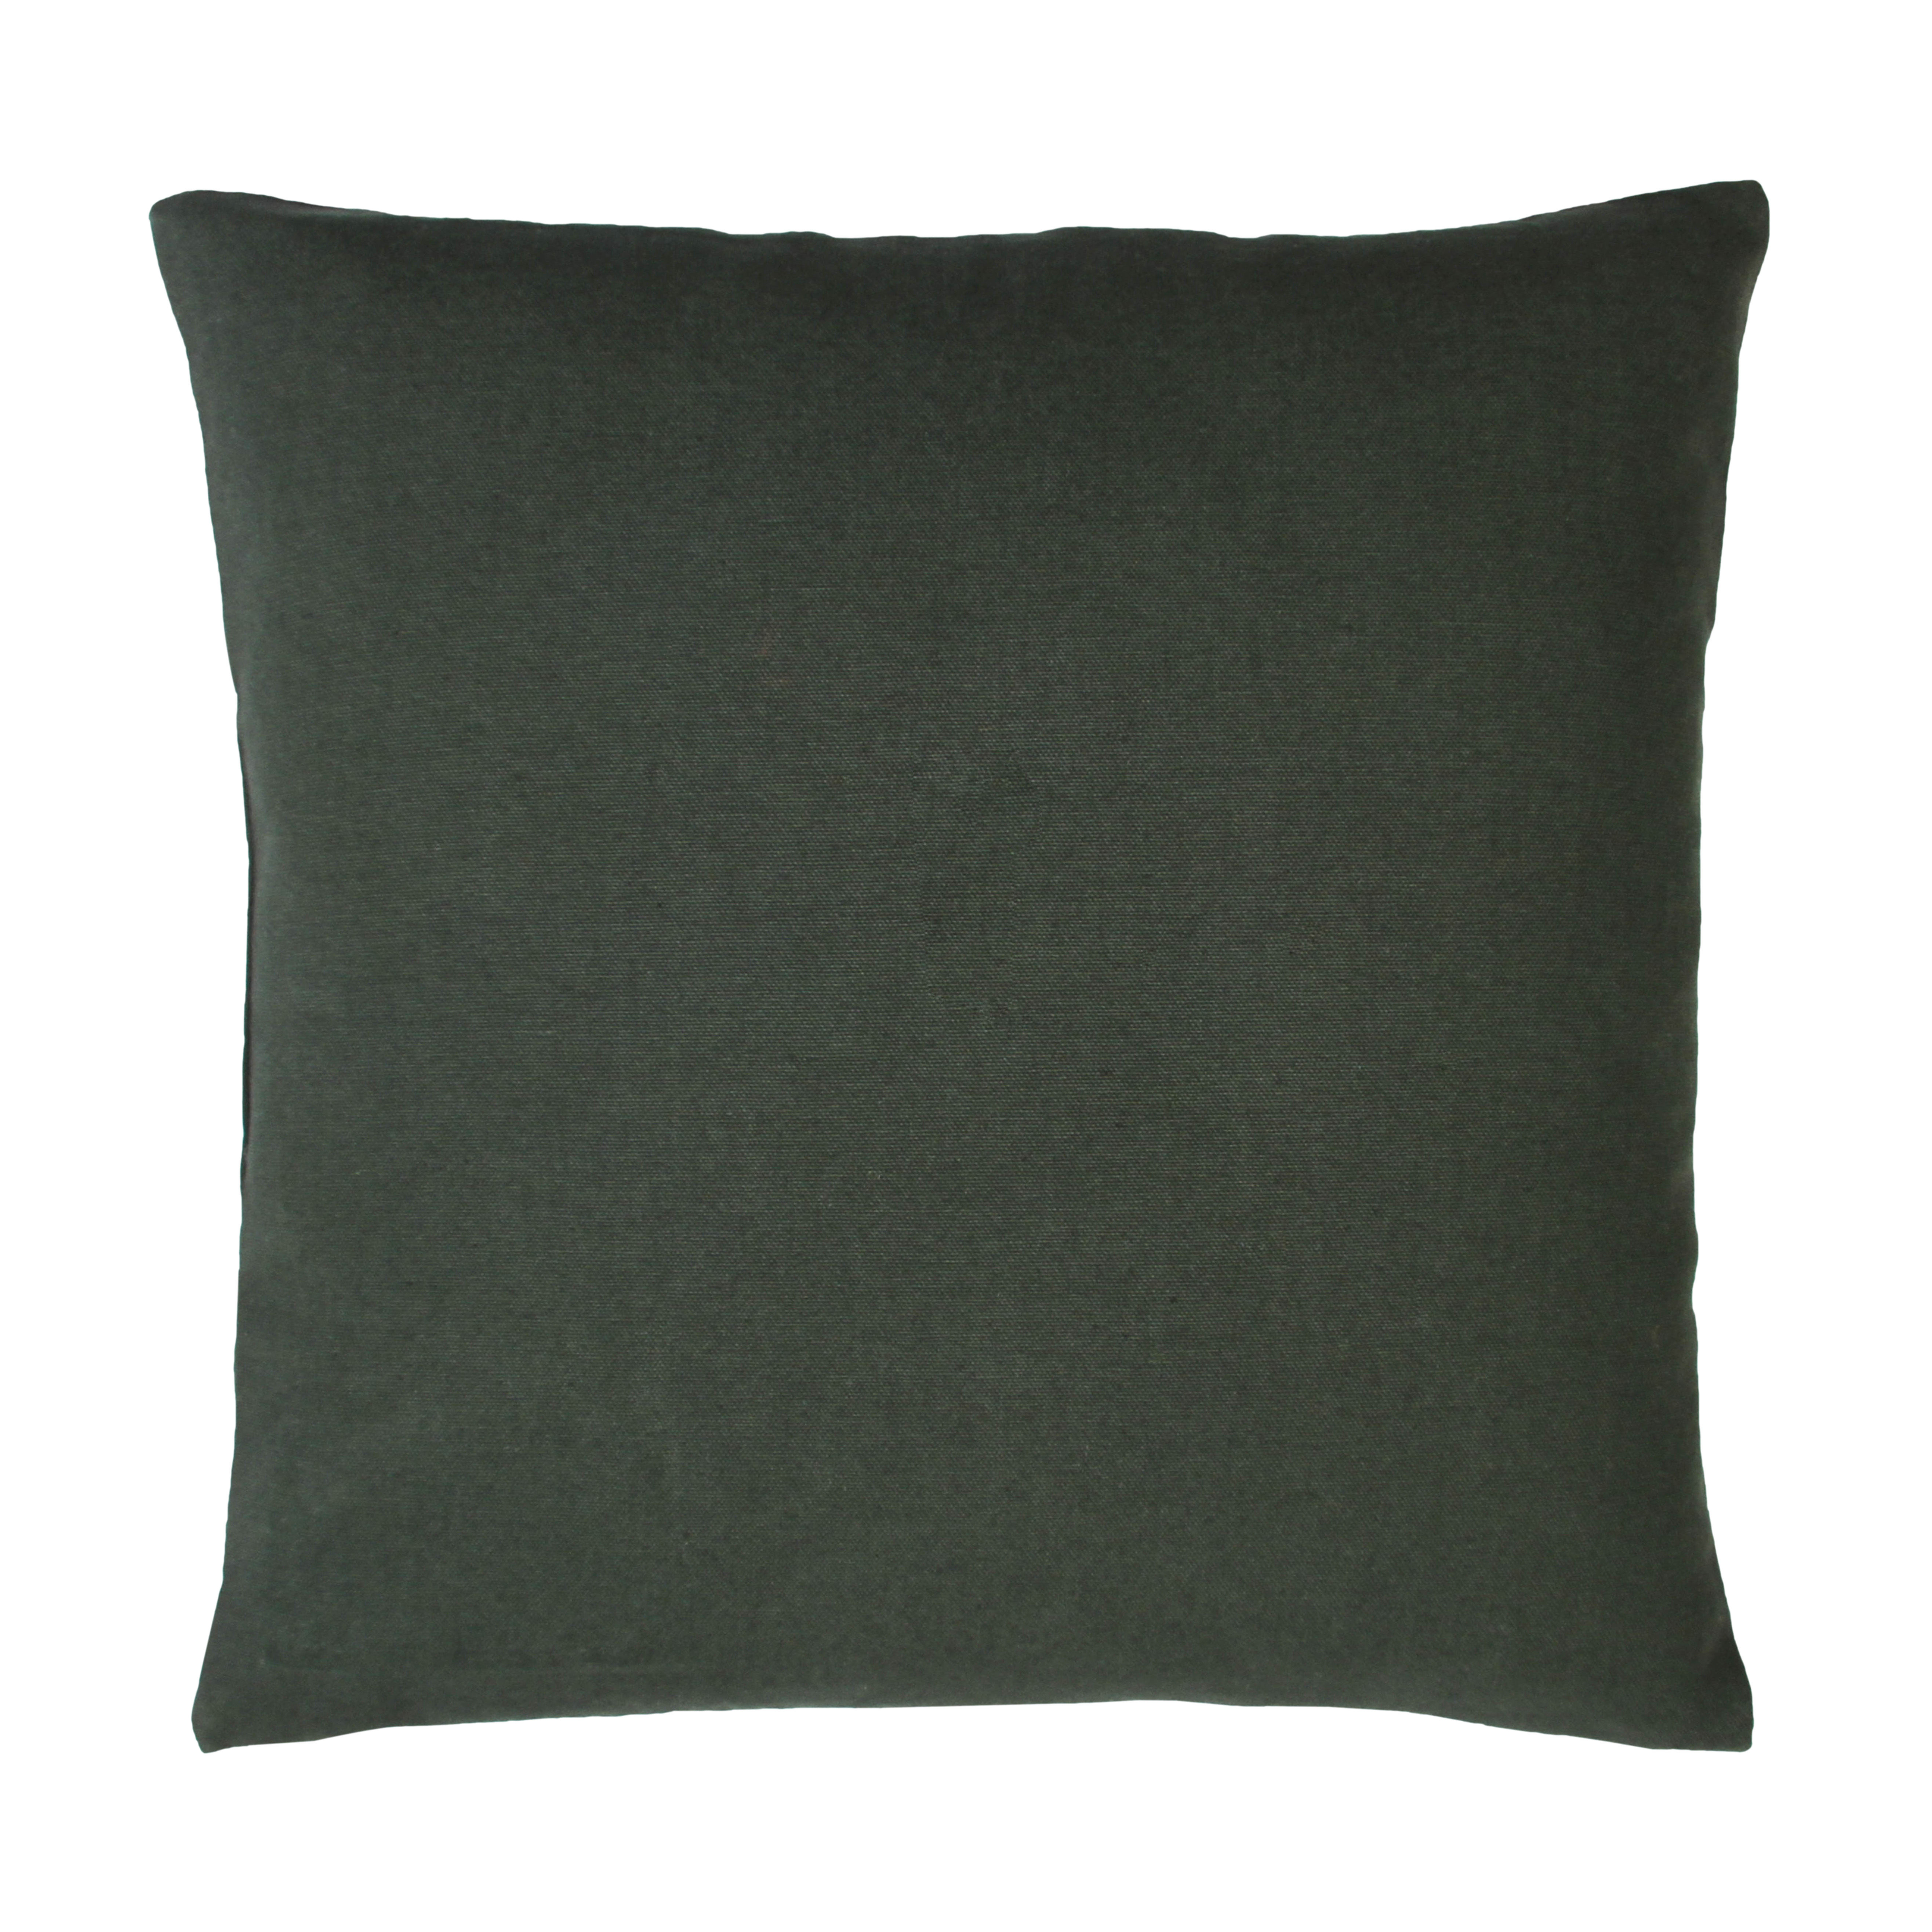 coussin palmier 40 x 40 cm palmier vert fonc or klevering made in design. Black Bedroom Furniture Sets. Home Design Ideas